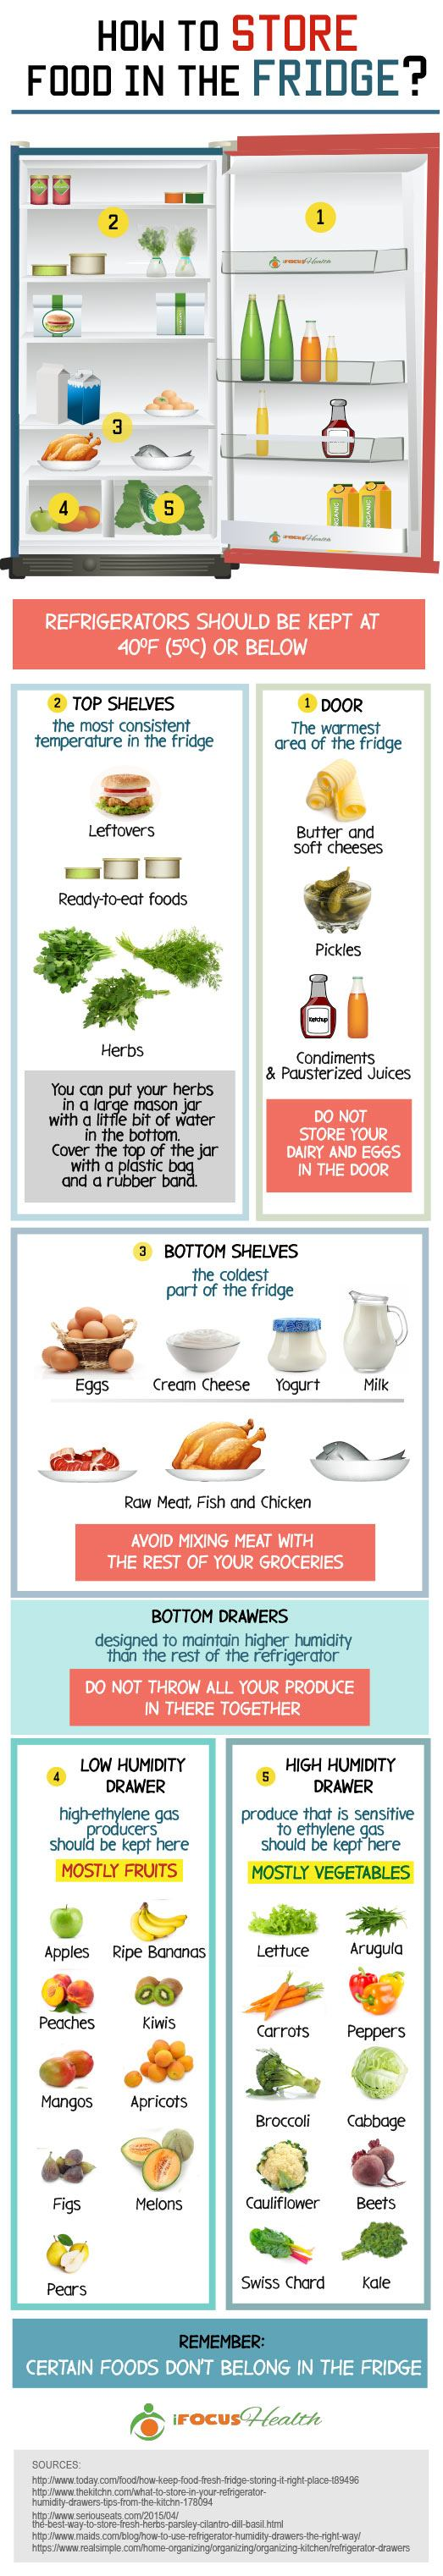 how to store food in the fridge properly infographic